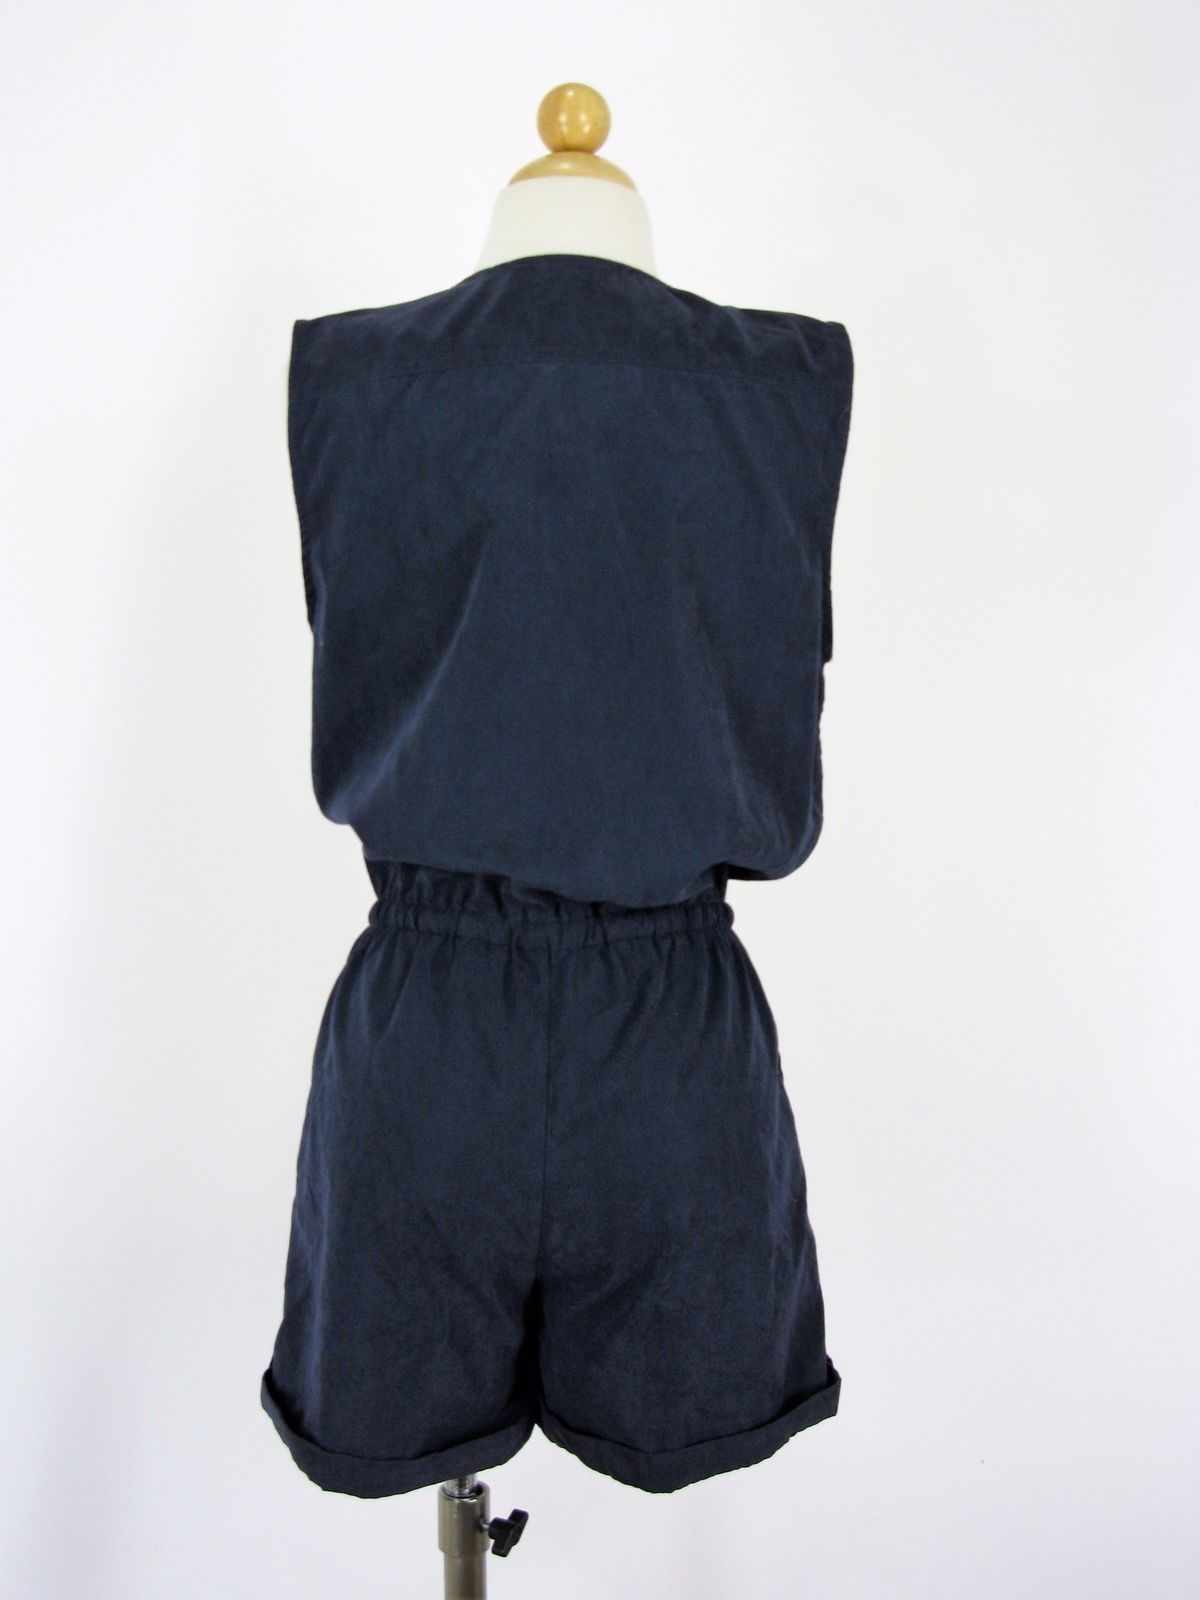 Romper Shorts Grifflin Paris Navy Blue Zipper Romper NEW $60 MSRP